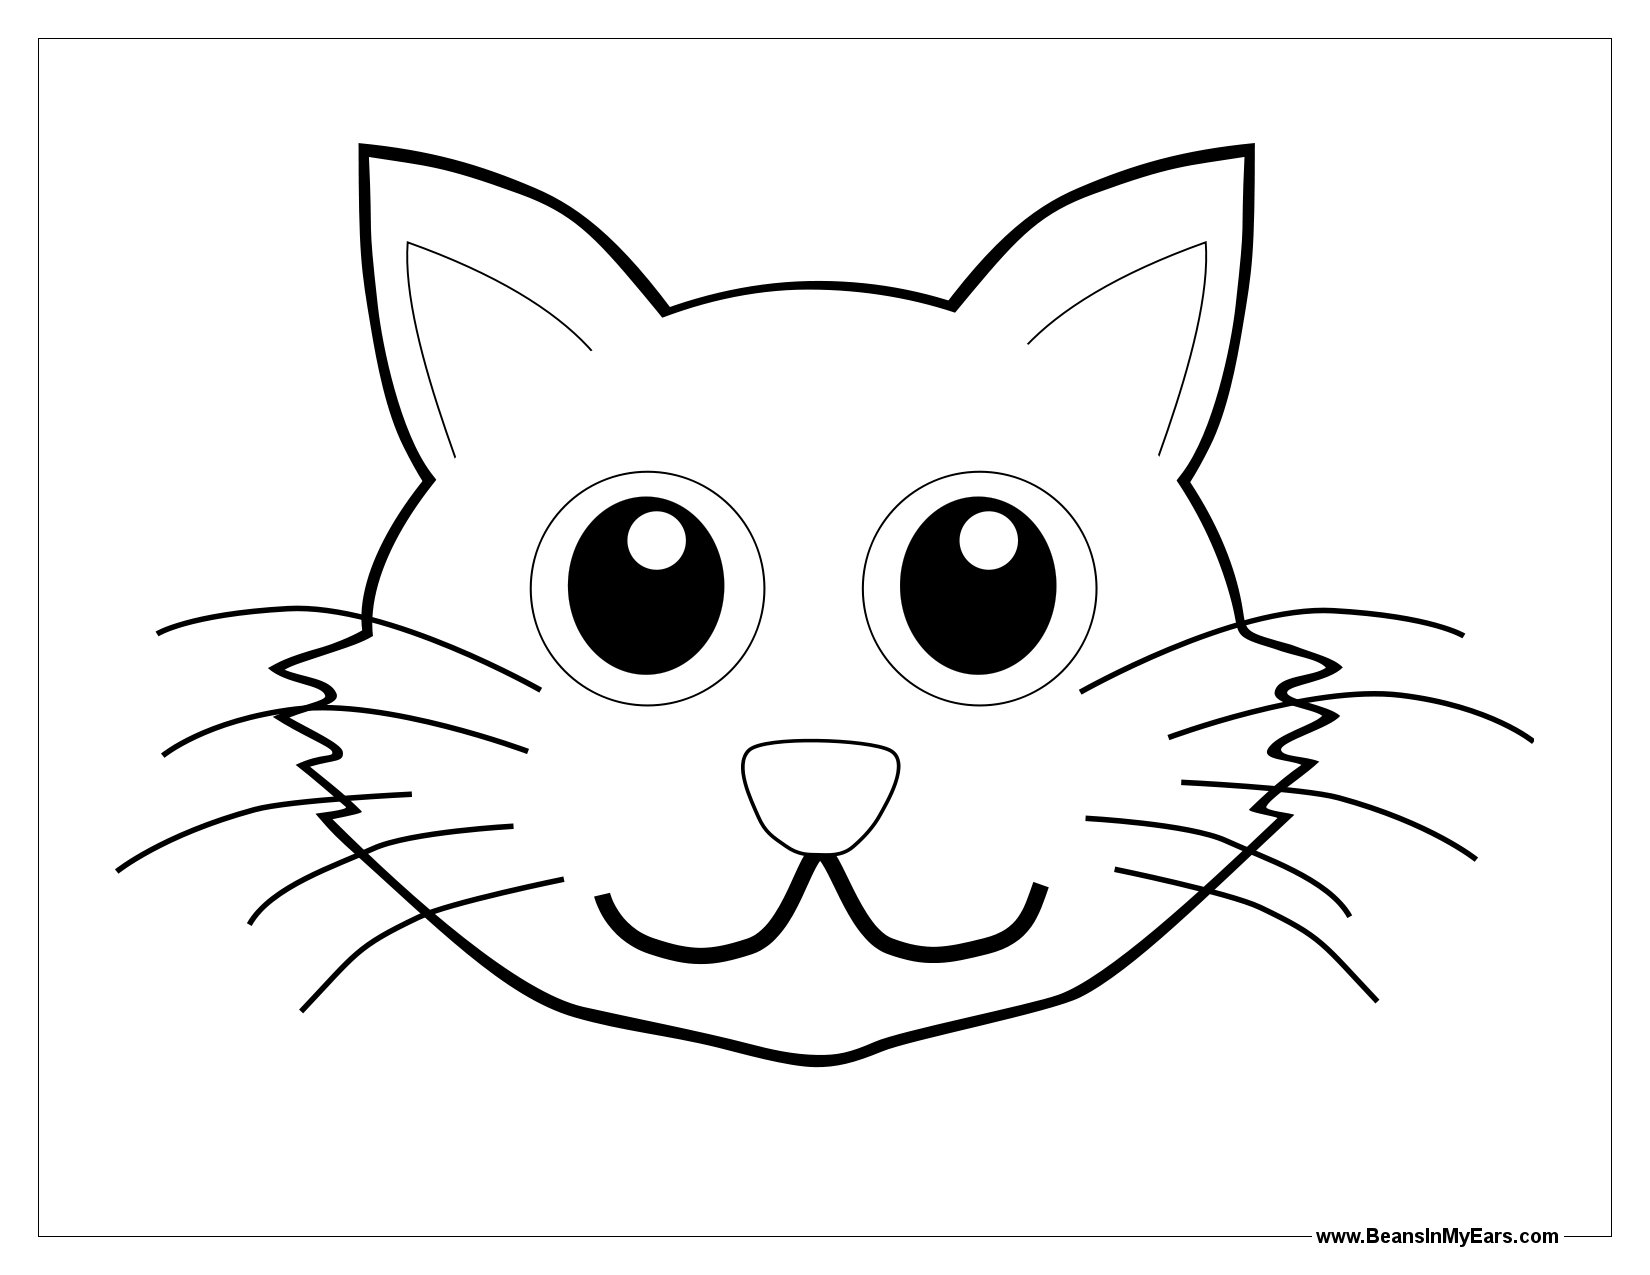 Line Drawing Of Child S Face : Line art faces animals clipart best